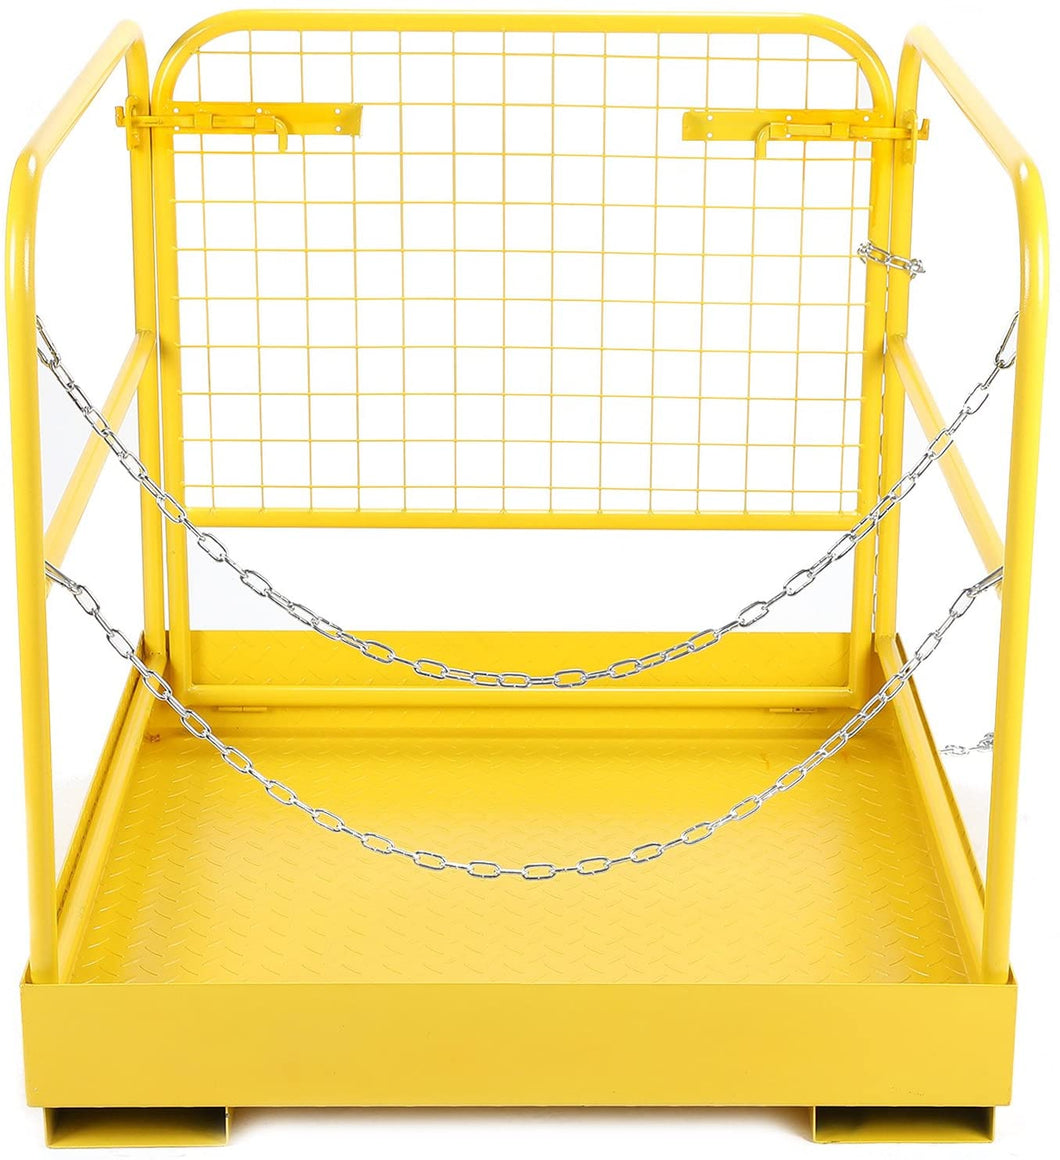 Heavy Duty Forklift Safety Cage Steel Work Platform 749 lb. Capacity, 34